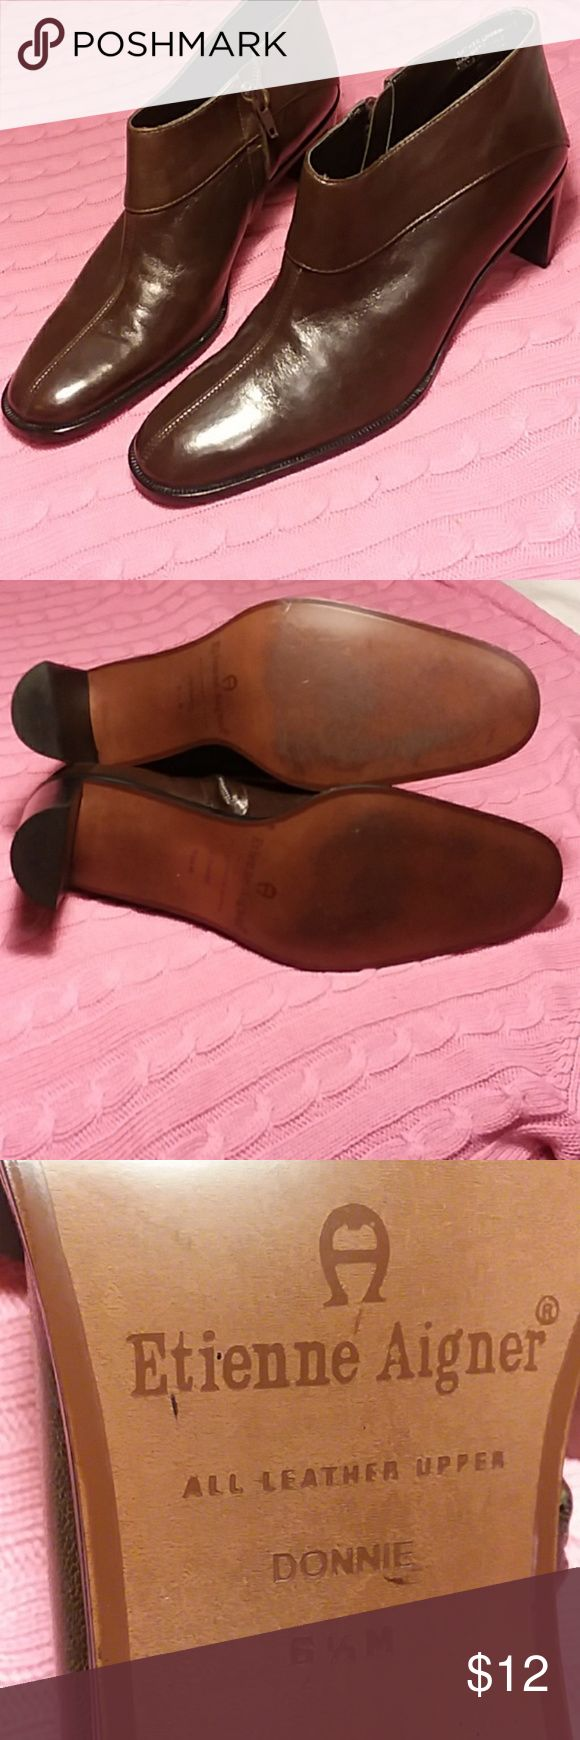 Etienne Aigner Short Brown Boots Size 6 1/2M Sleek and shiny brown leather Etienne  Aigner boots. Worn a few times. Look like new. Zippers on insides. Padded inside heel for comfort. Etienne Aigner Shoes Ankle Boots & Booties